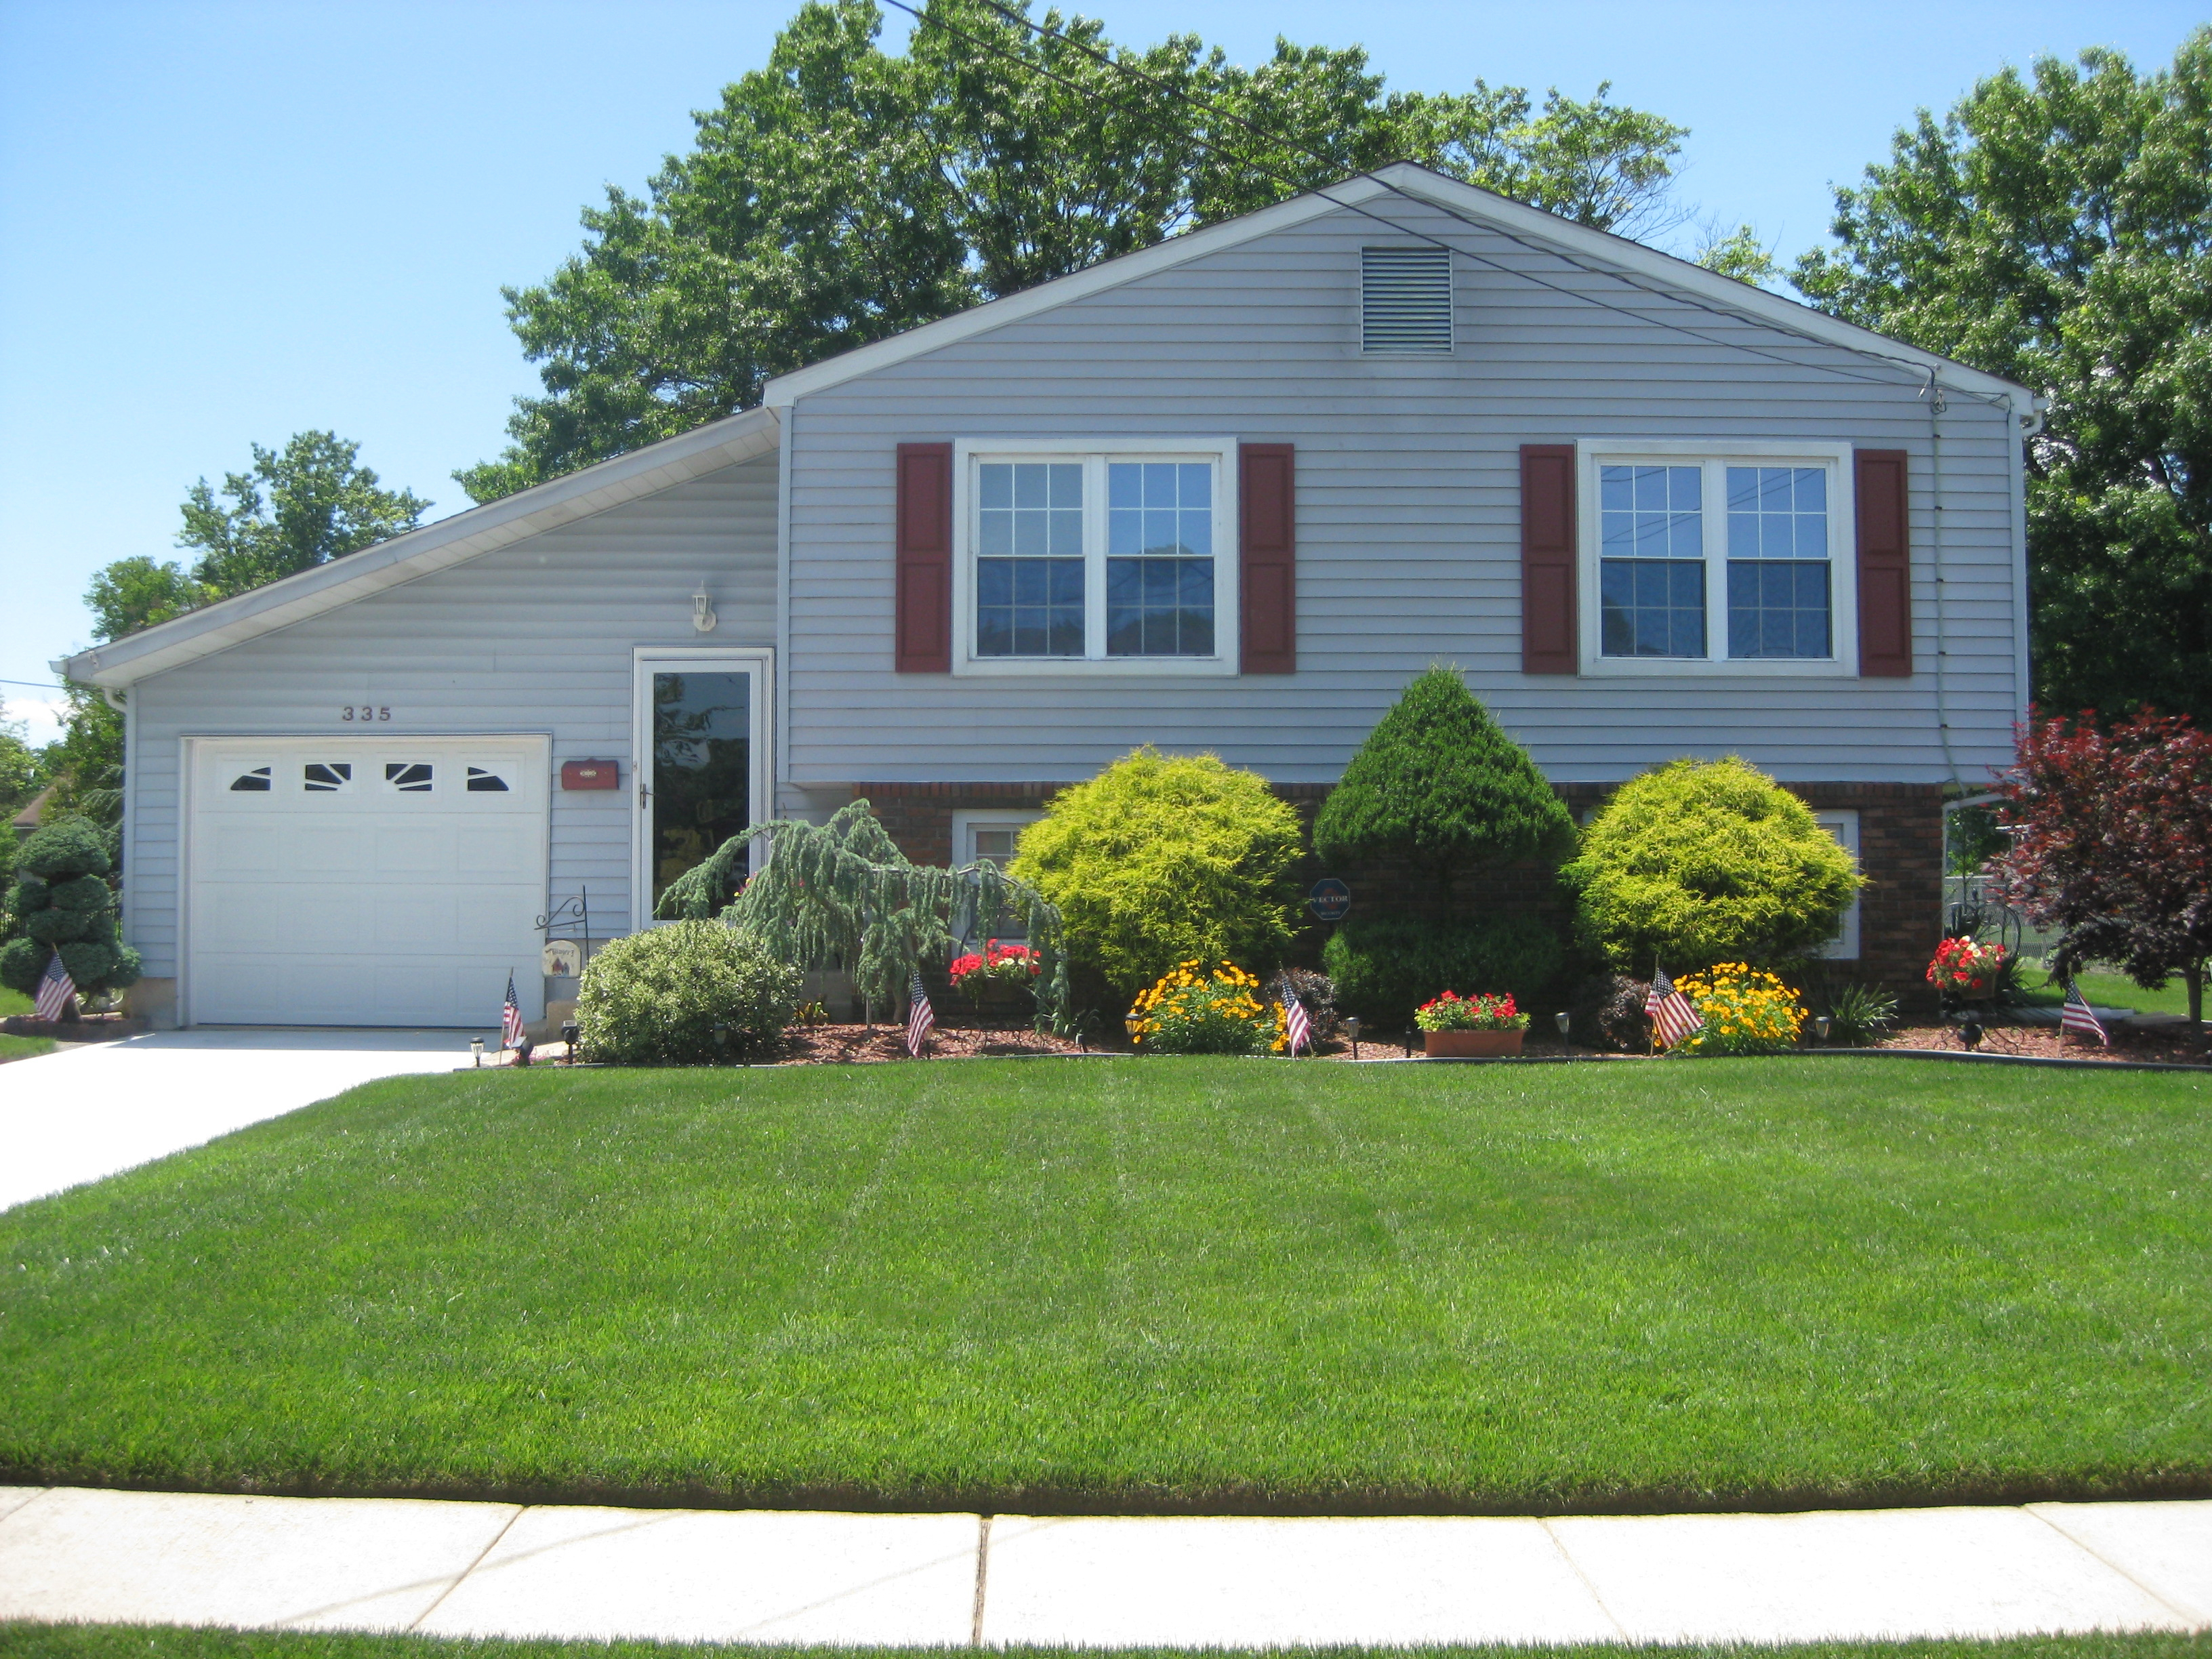 10 Awesome Landscaping Ideas For Split Level Homes landscaping split level homes ac46 roccommunity 2020